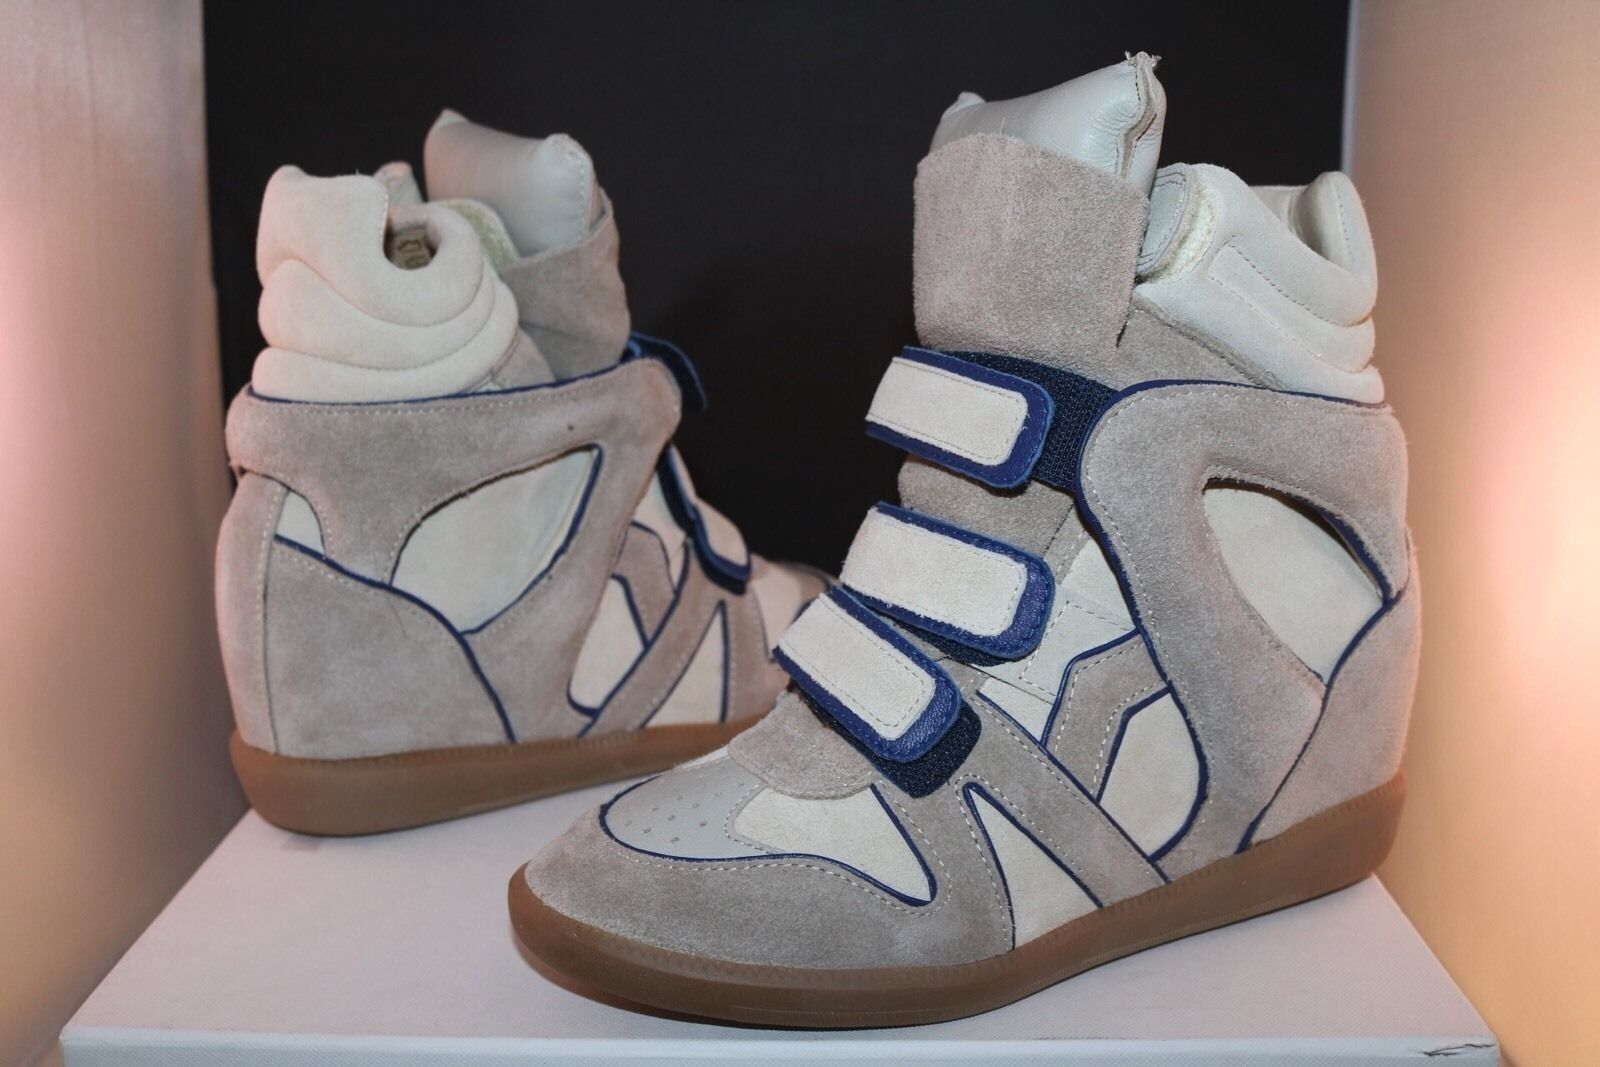 b3685c247b5f Isabel Marant Bayley Tony s Wila Blue Ivory Wedge High Top Sneakers 38 Beige  Athletic Shoes.